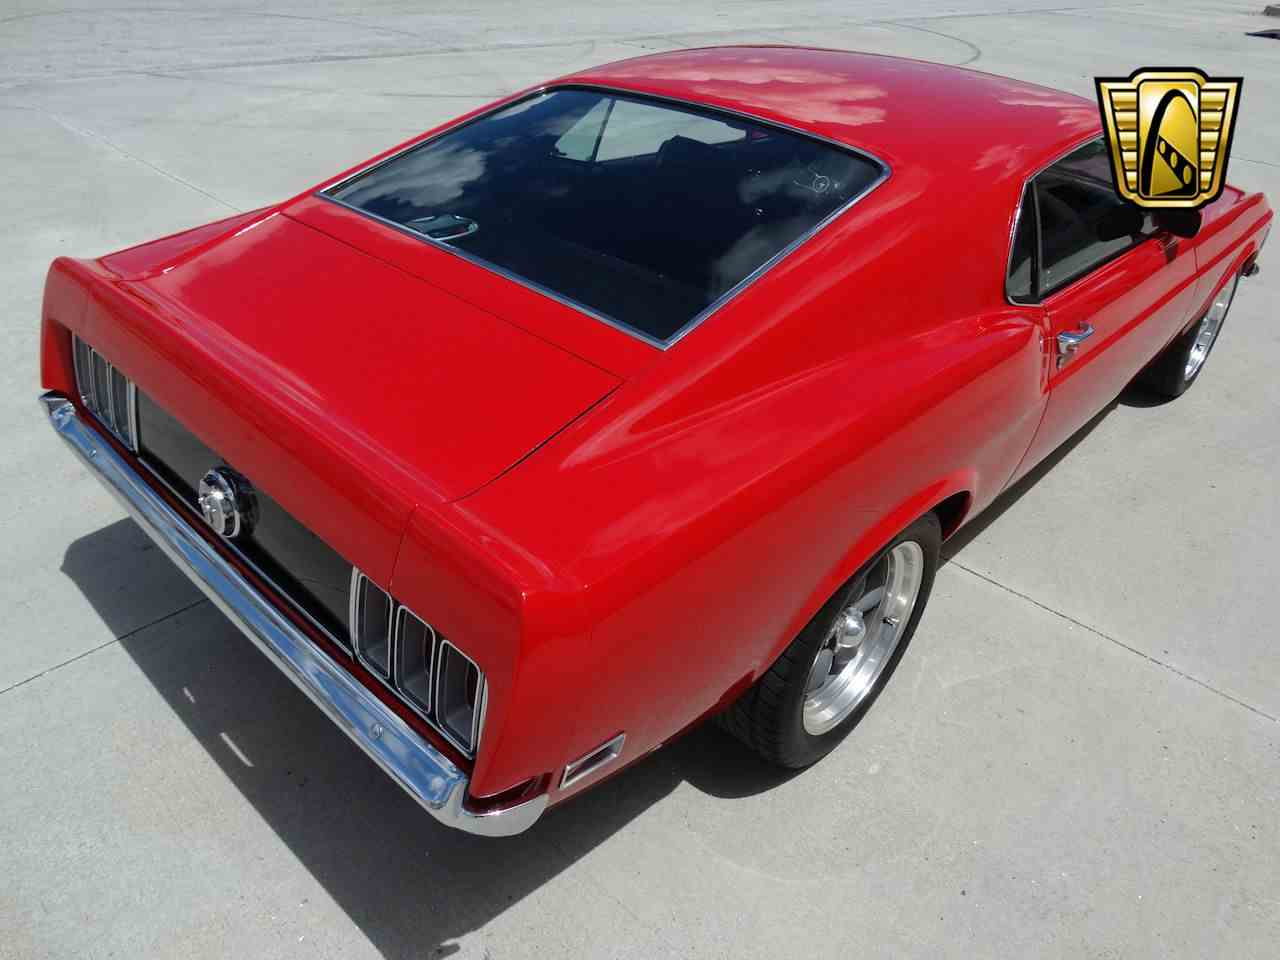 Large Picture of Classic 1970 Ford Mustang located in Florida Offered by Gateway Classic Cars - Fort Lauderdale - LG4A